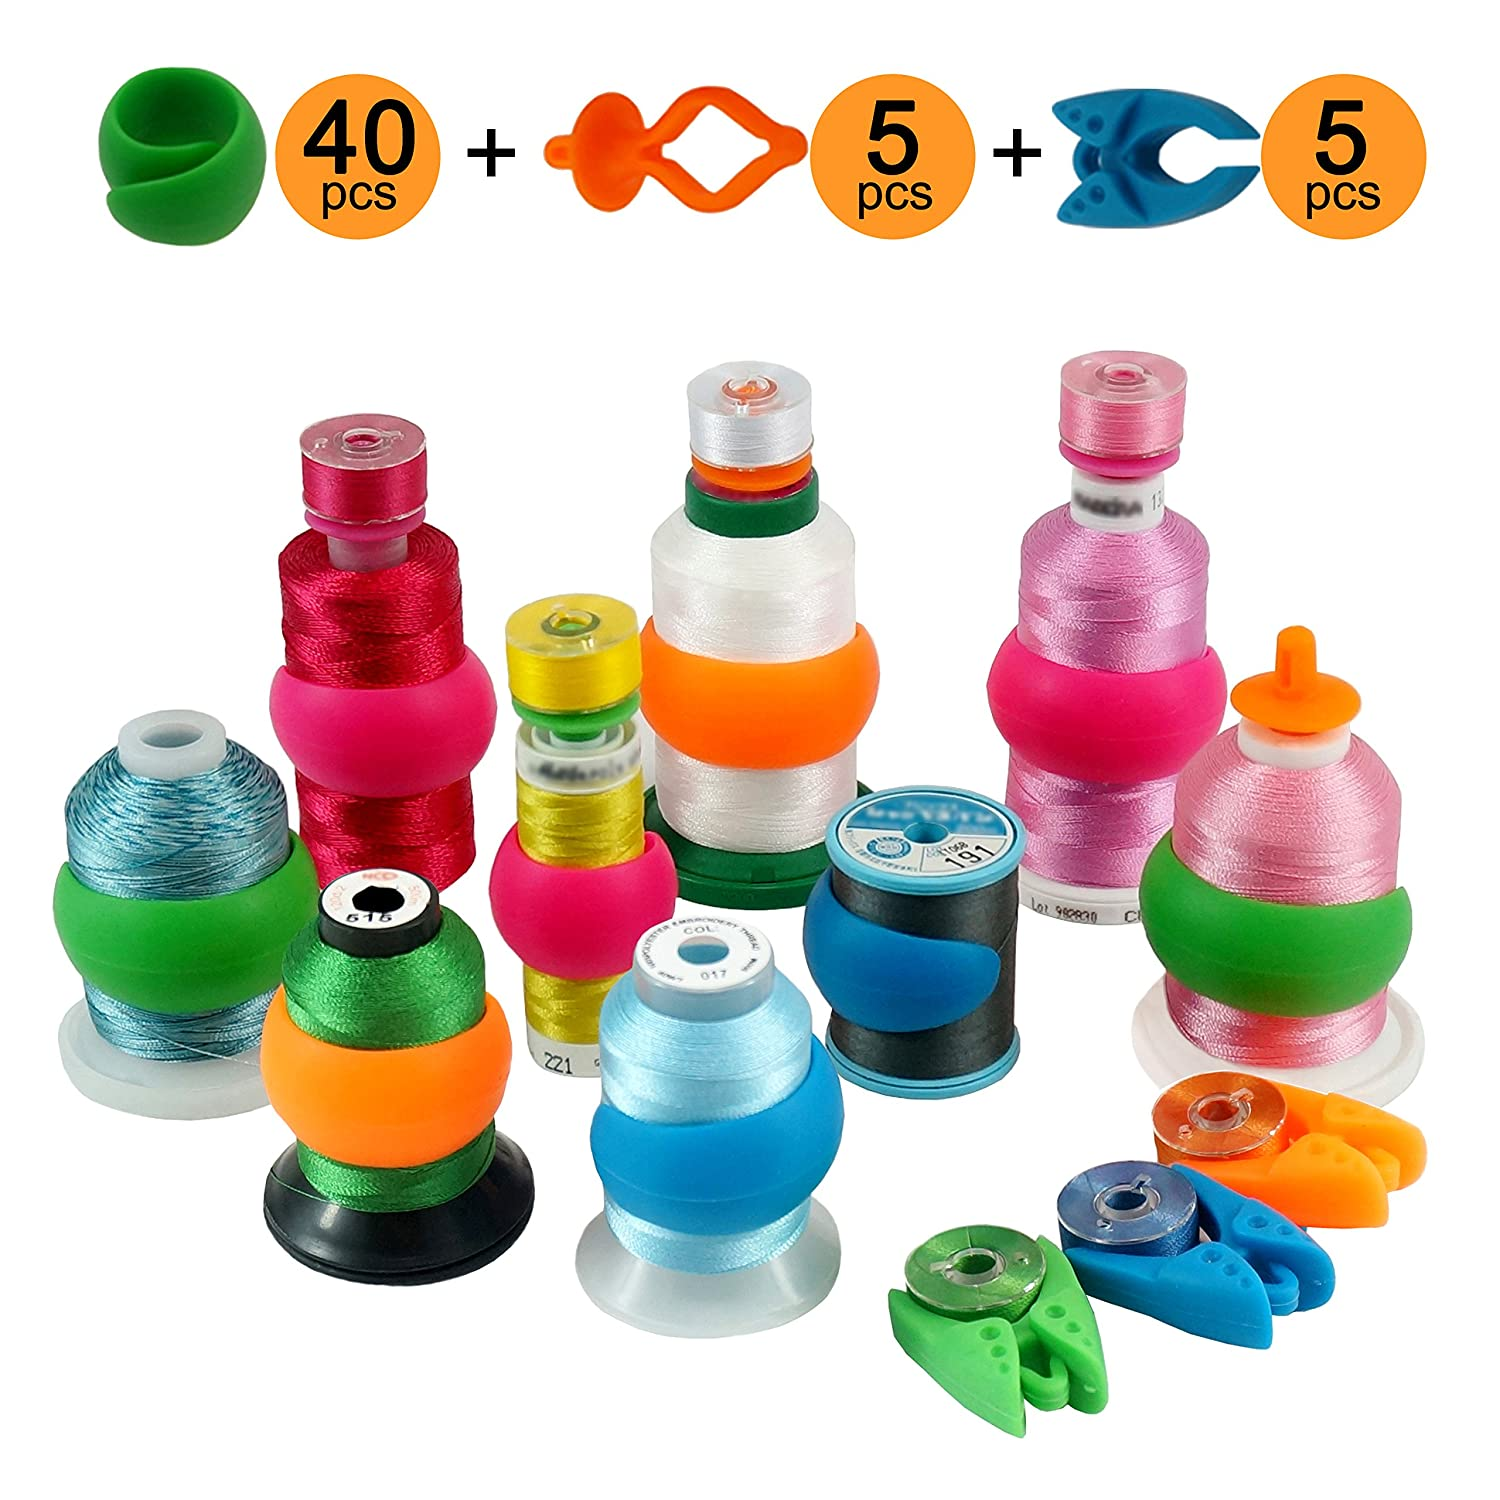 Prevent Thread Tails from Unwinding New brothread 20pcs Thread Spool Huggers No Loose Ends for Sewing and Embroidery Machine Thread Spools